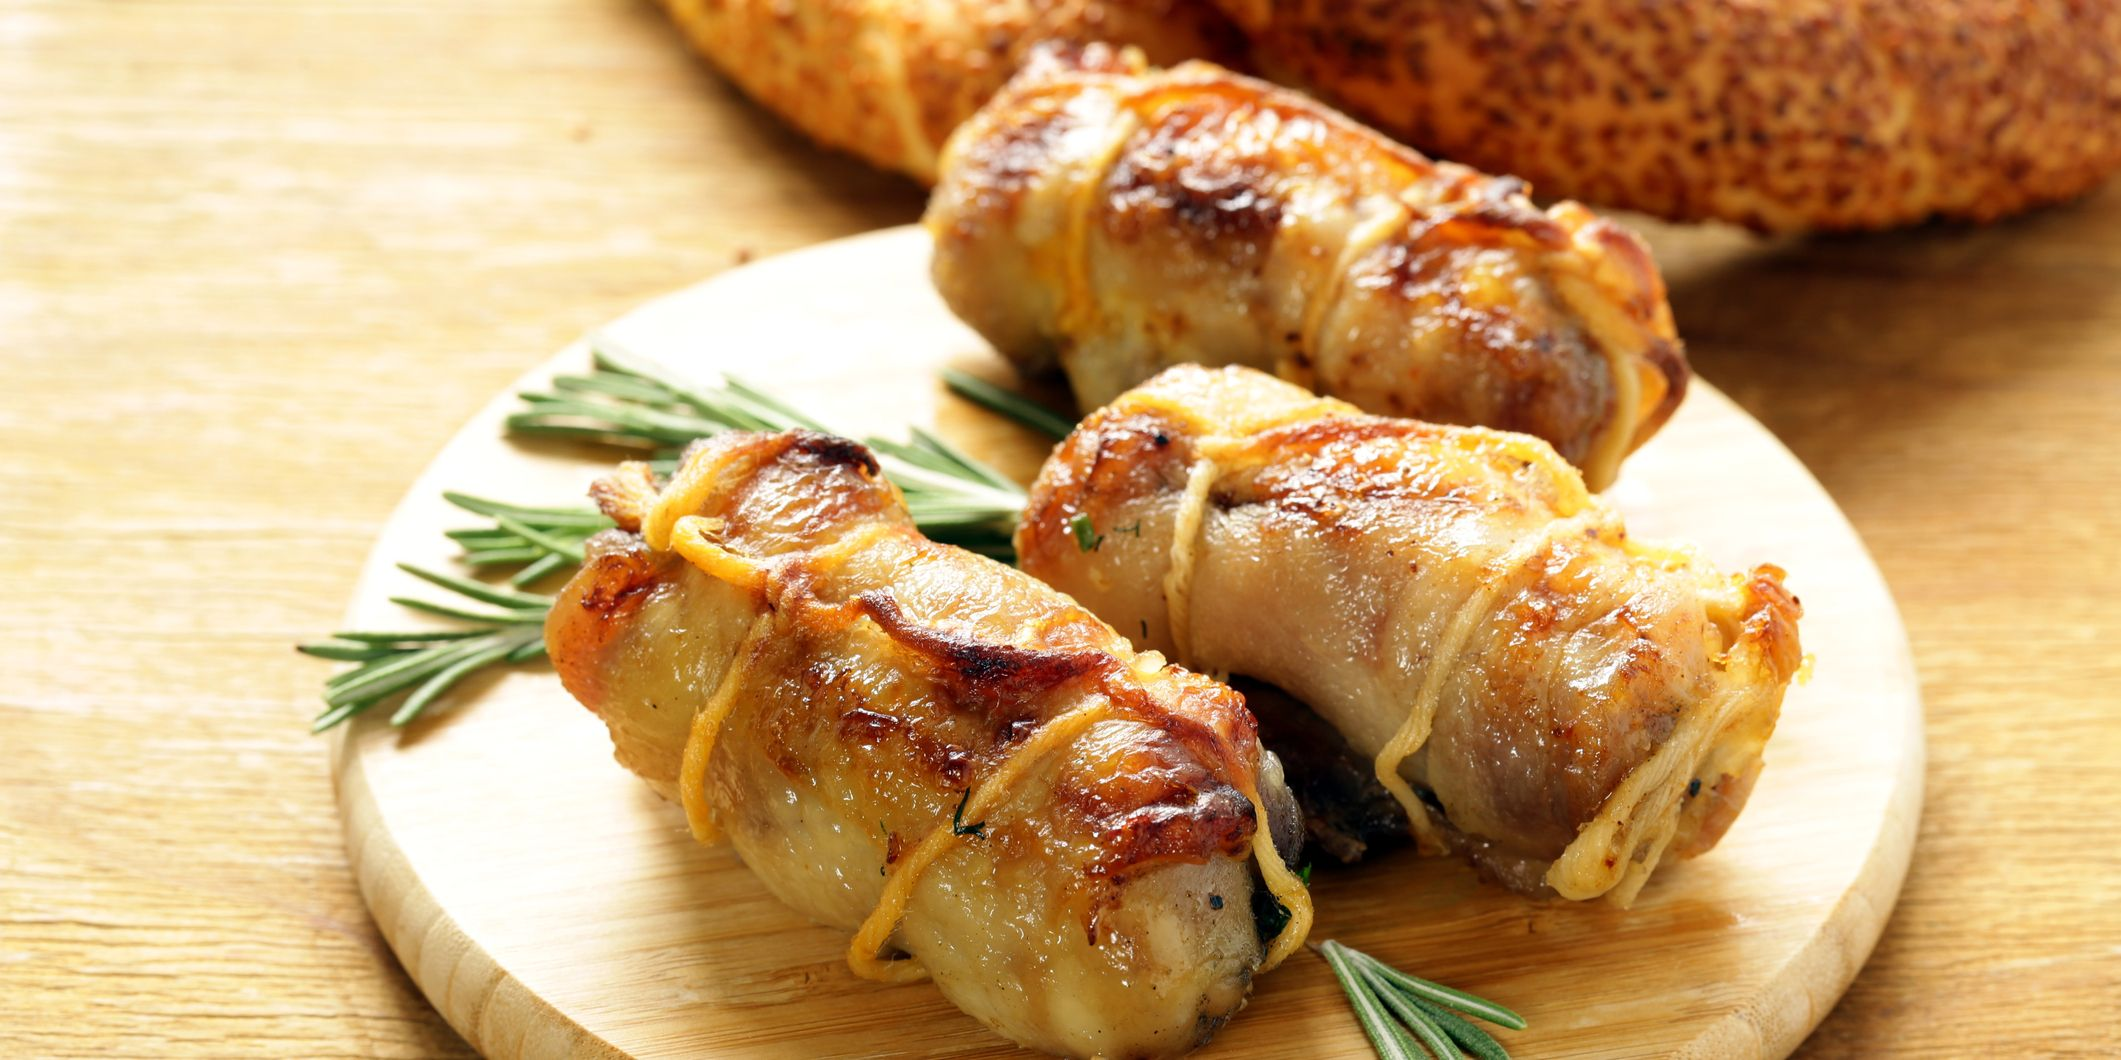 Roast rolls of chicken fillet with herbs